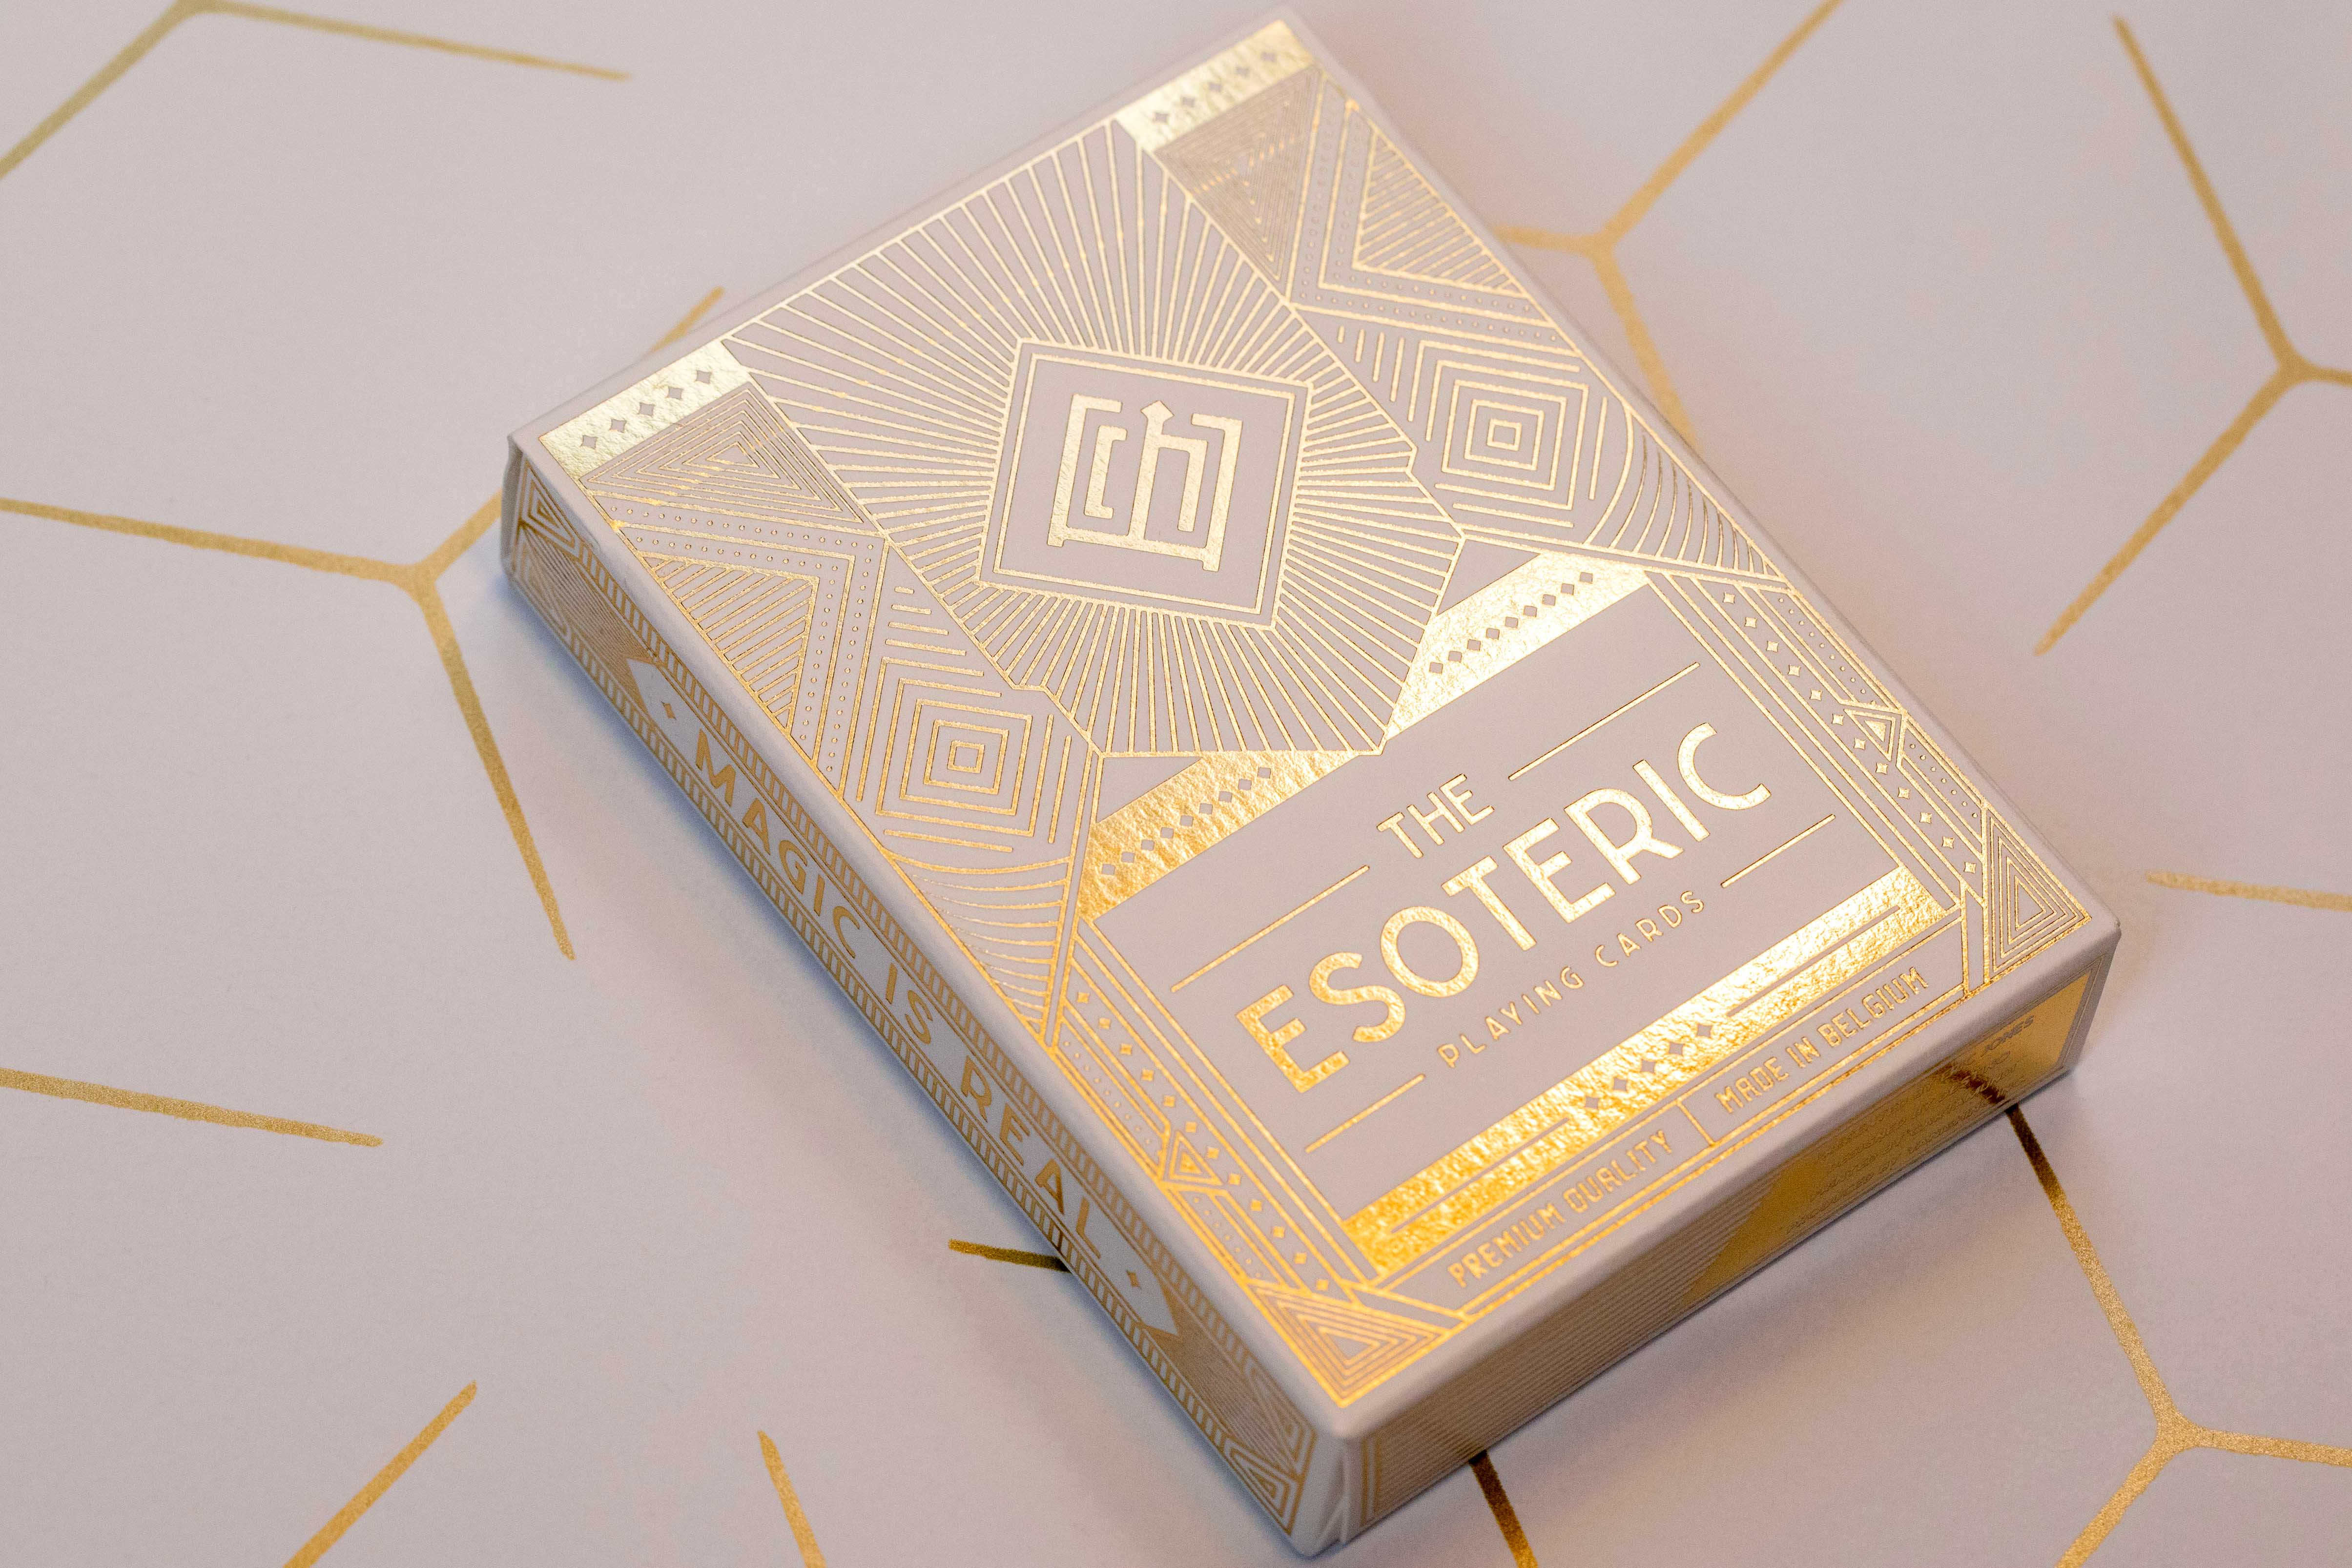 The Esoteric Playing Cards Blends Beauty And Functionality Designed by Destino